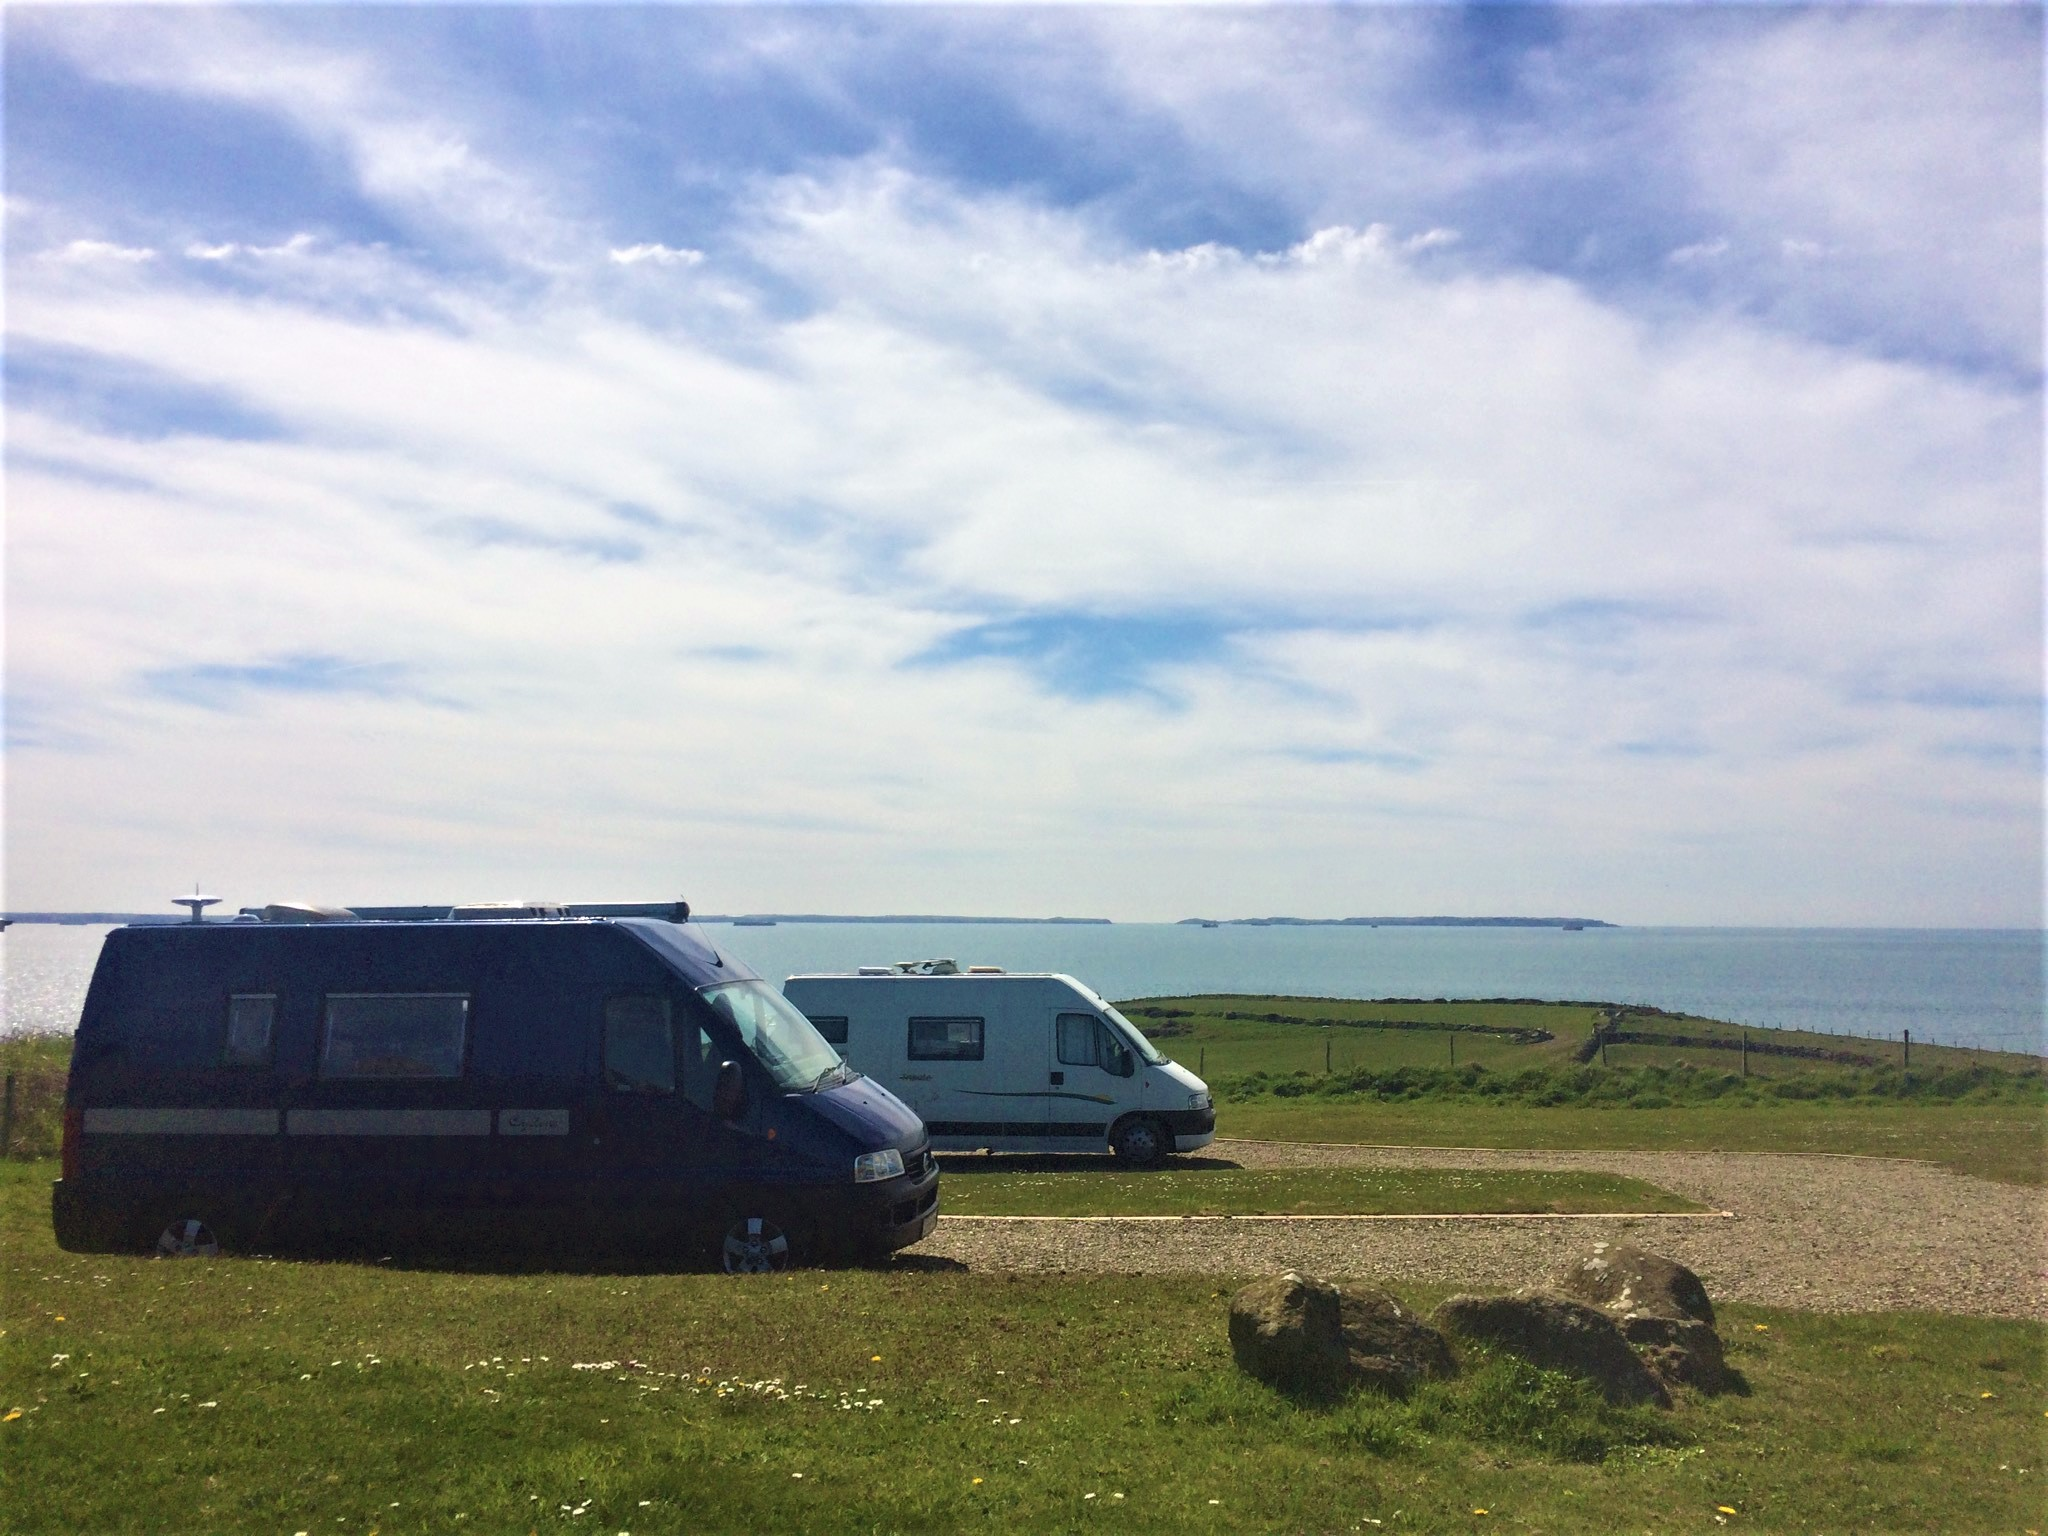 Hardstanding pitches A4 and A5 in camping fields